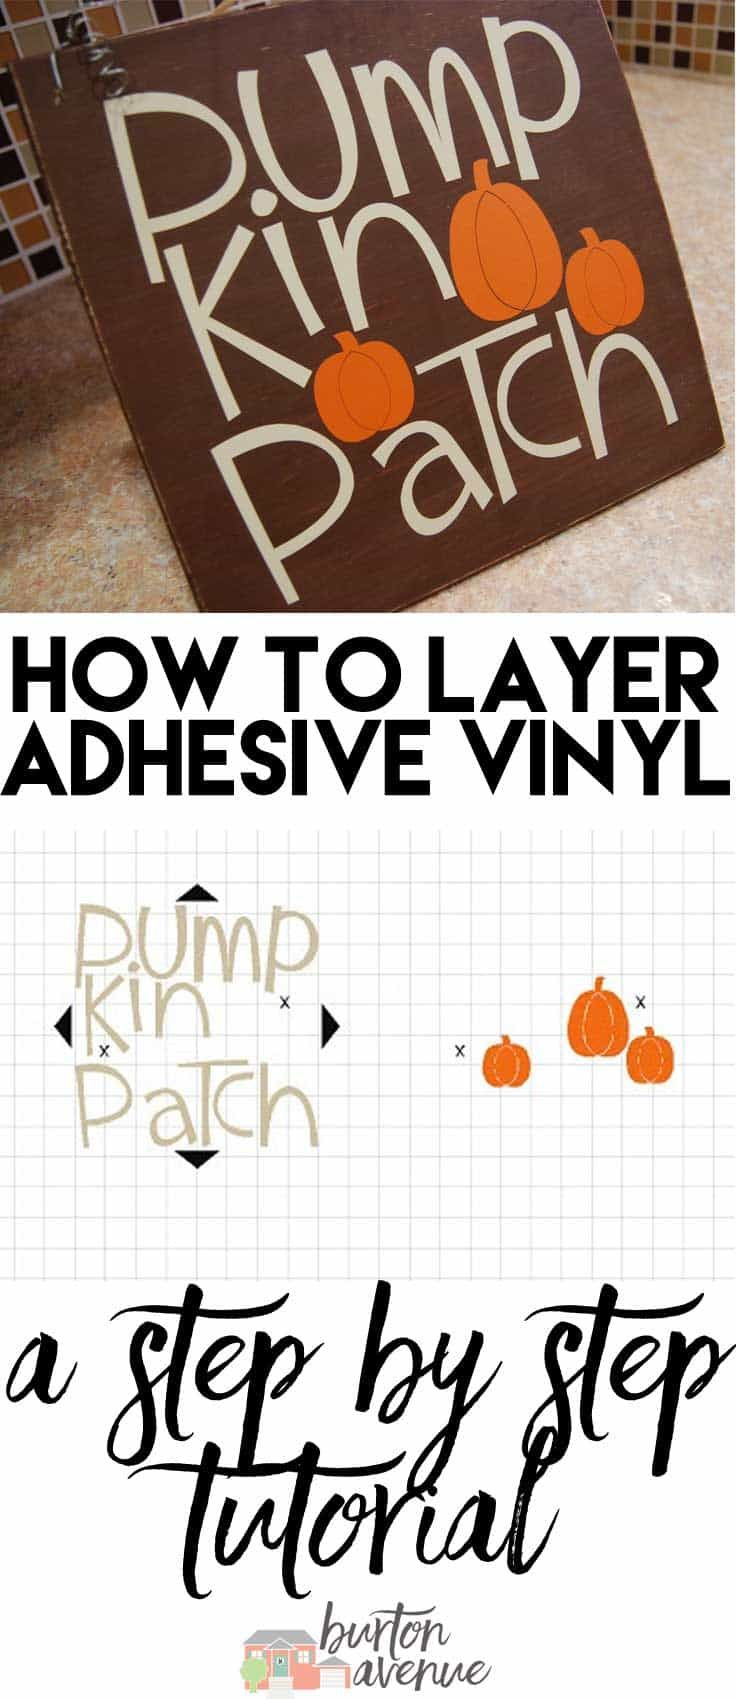 How to layer adhesive vinyl with your Silhouette, Cricut, or other electronic cutter.